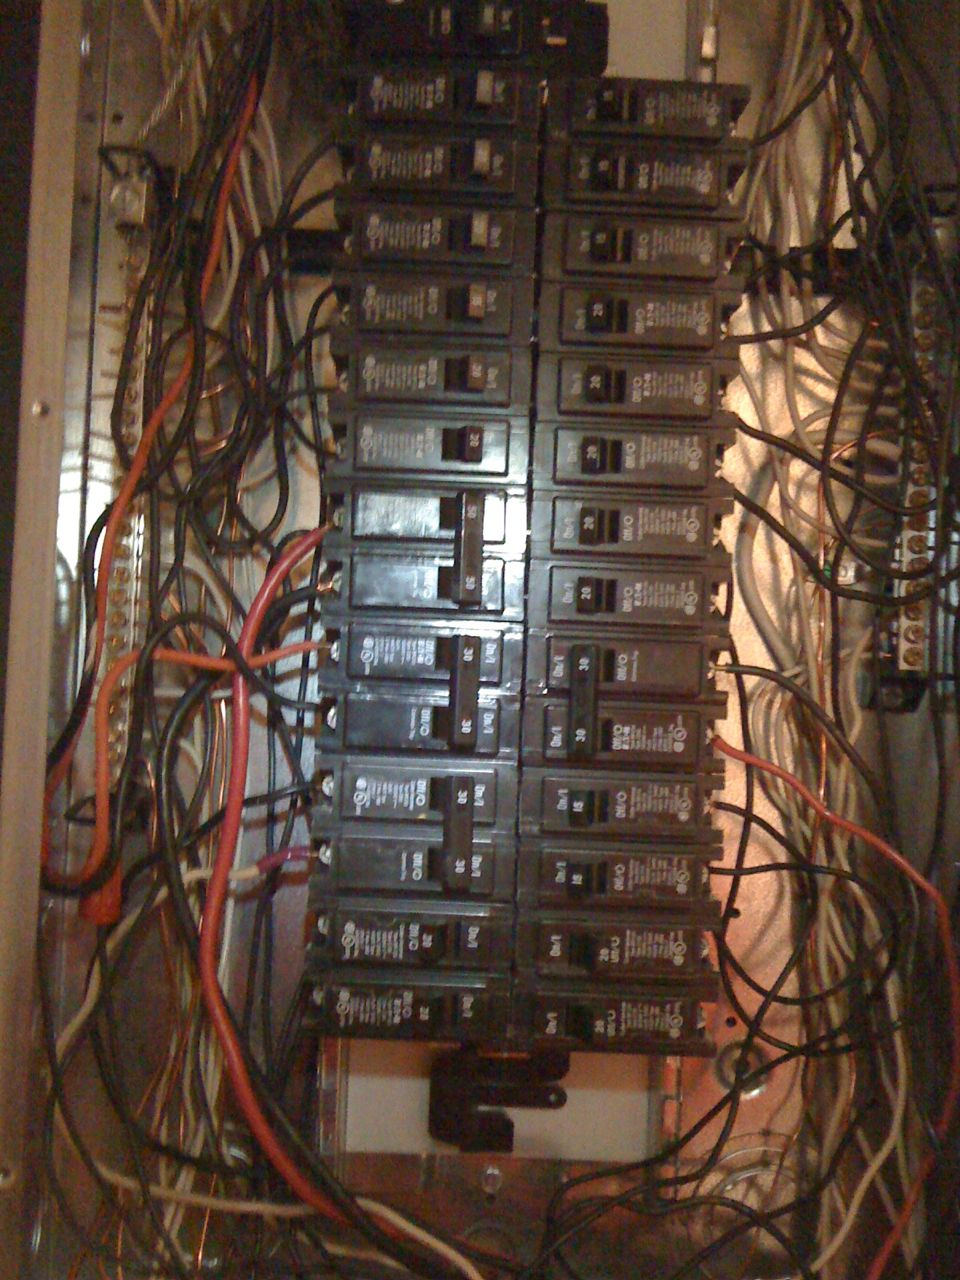 Circuit Breaker Wiring Diagram Further House Breaker Box Wiring